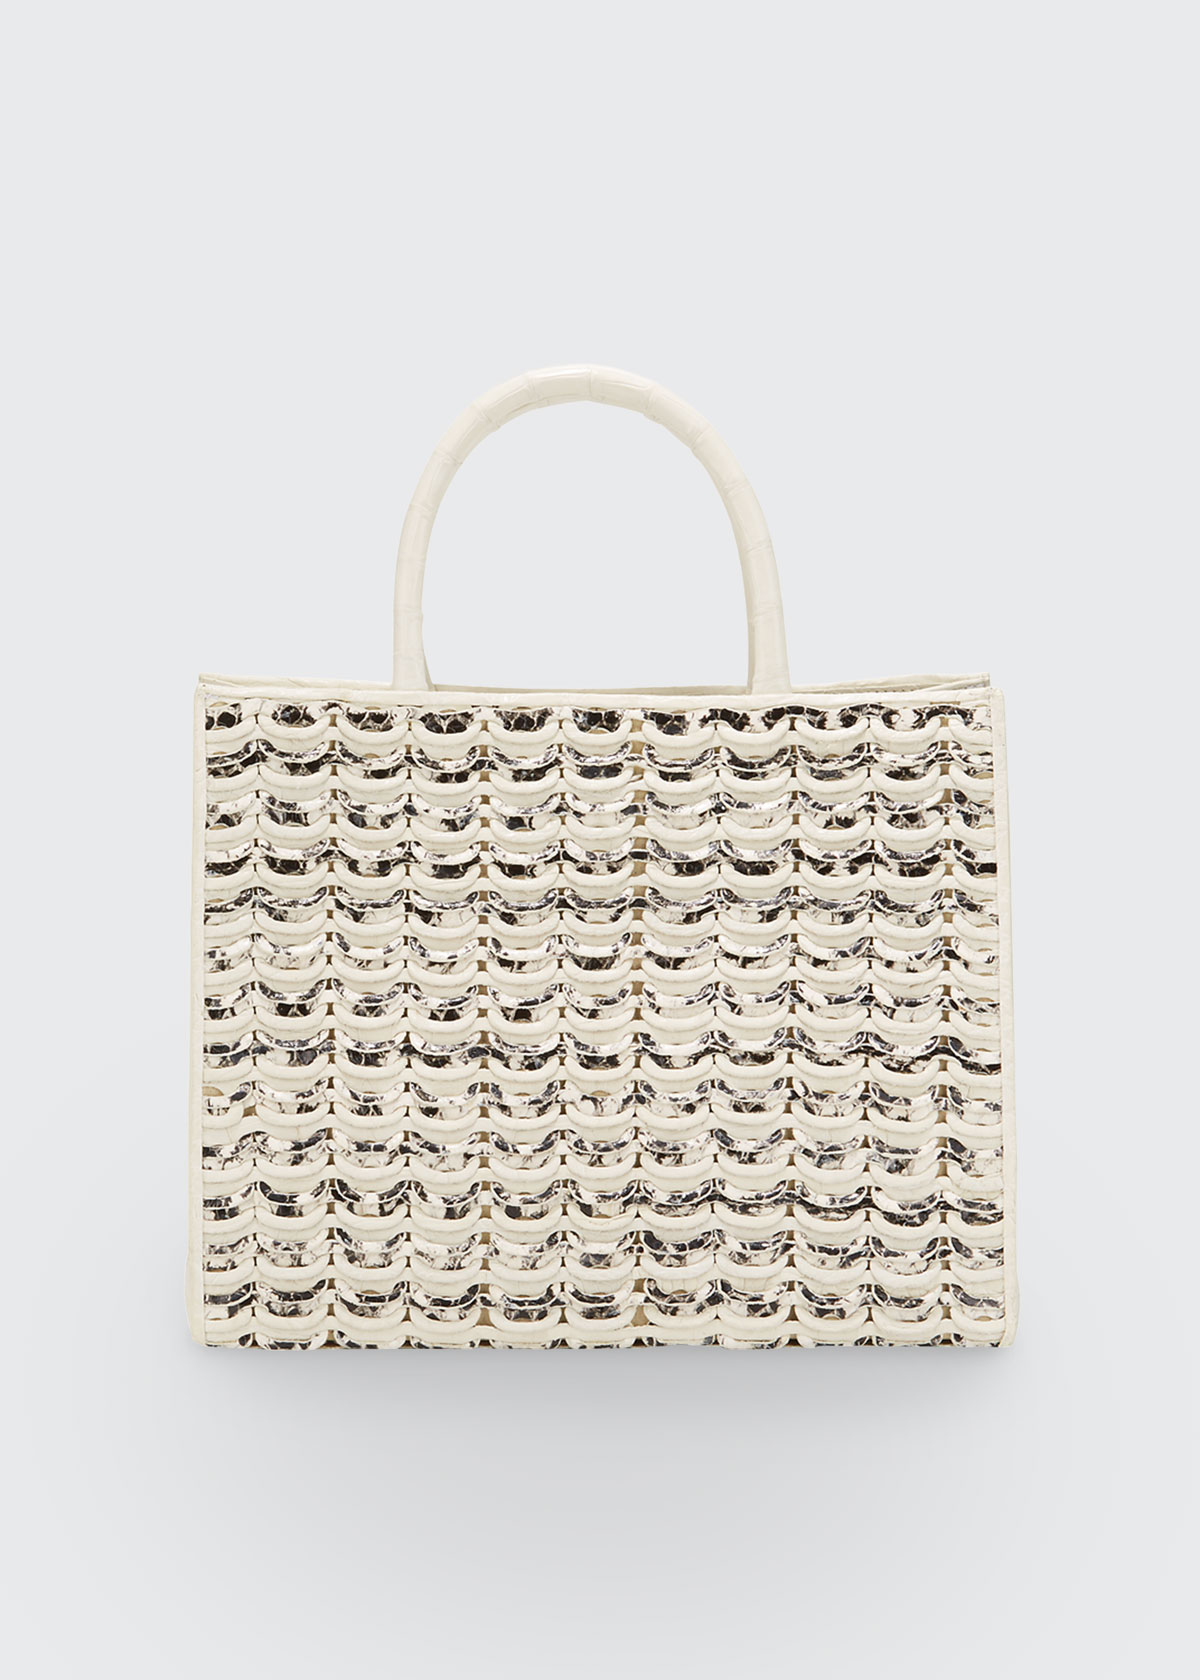 Nancy Gonzalez LIMITED-EDITION EMMA SMALL WOVEN TOTE BAG